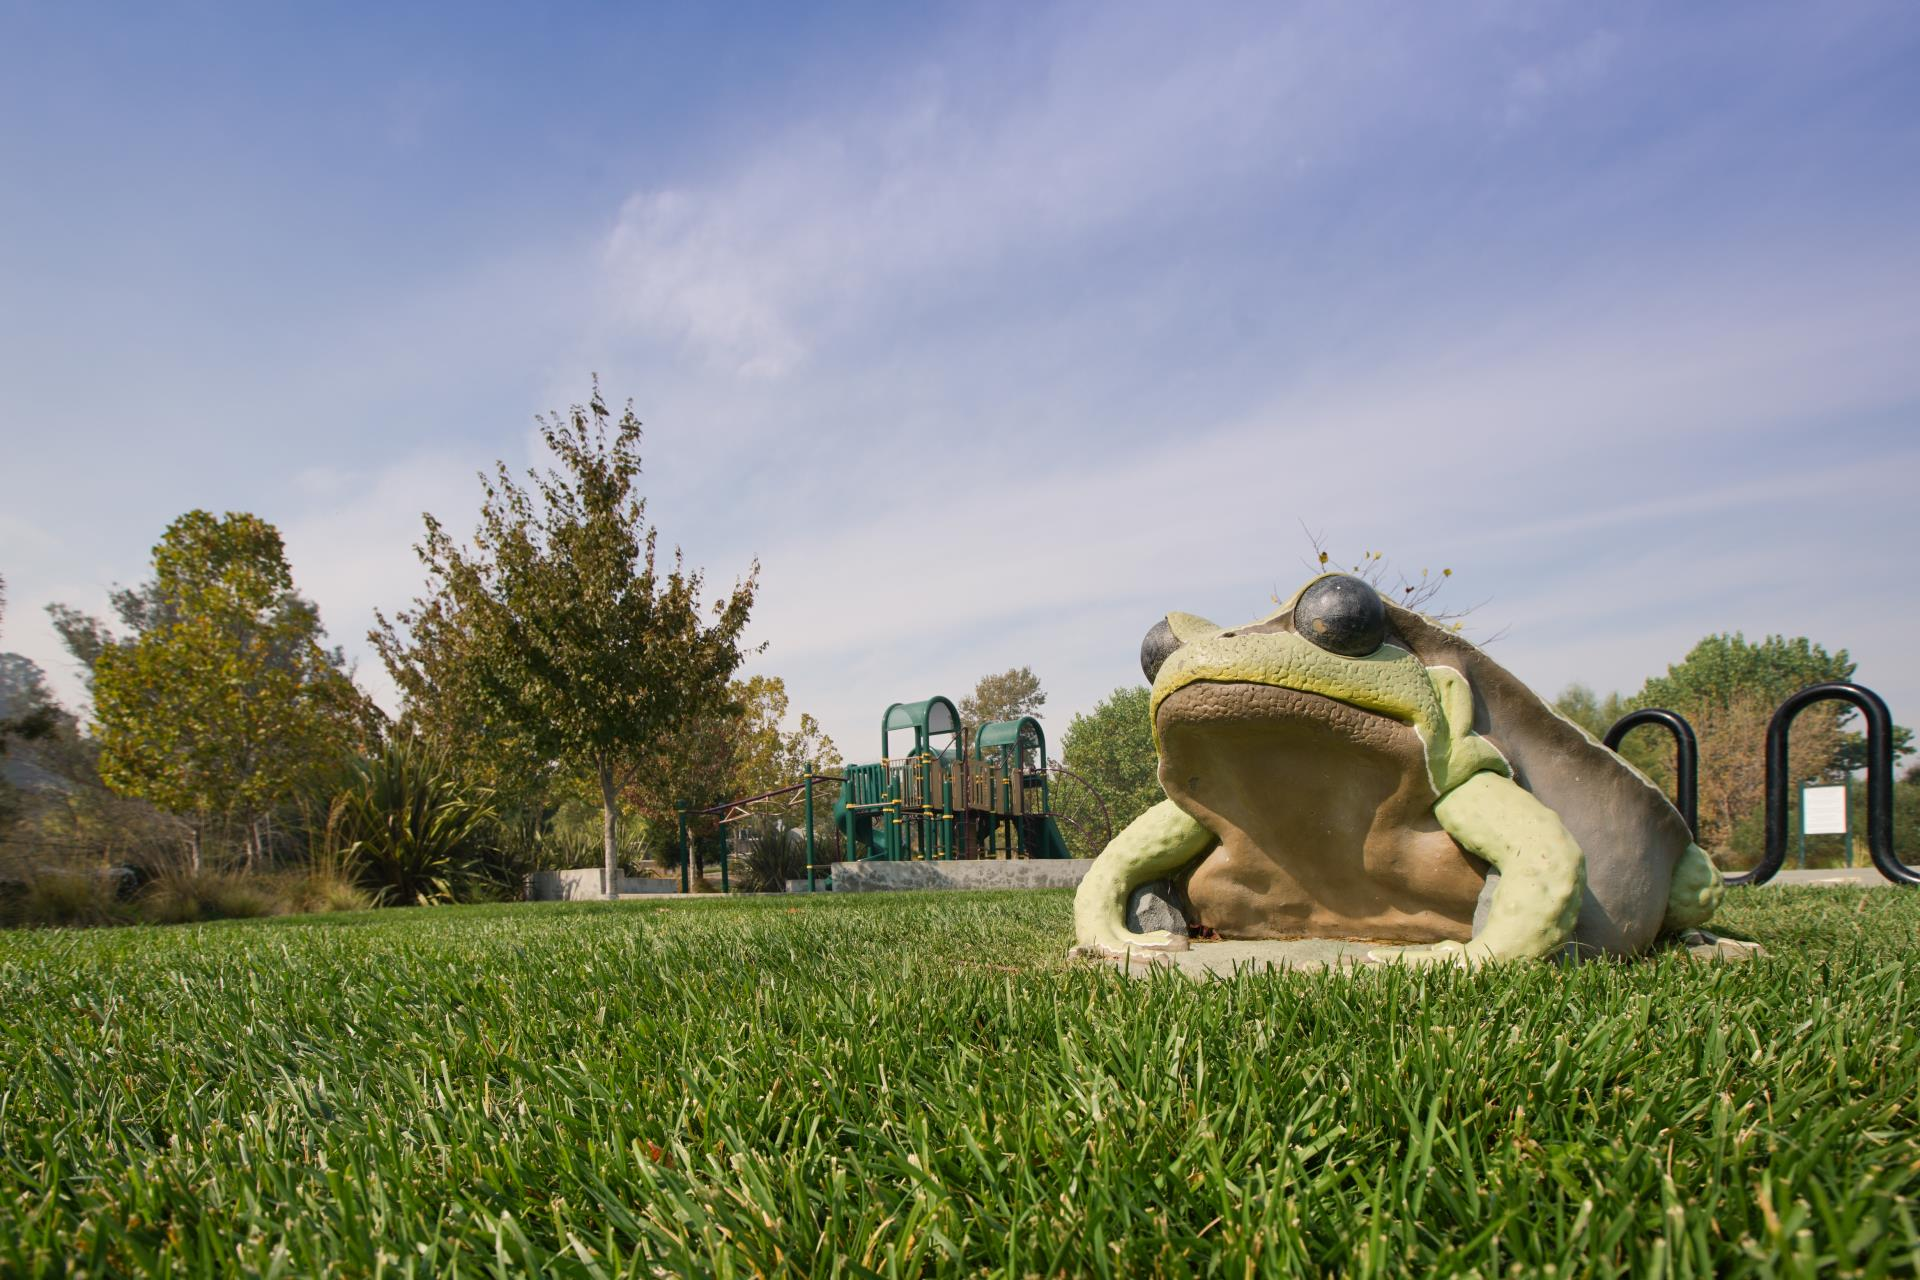 Frog Pad Park